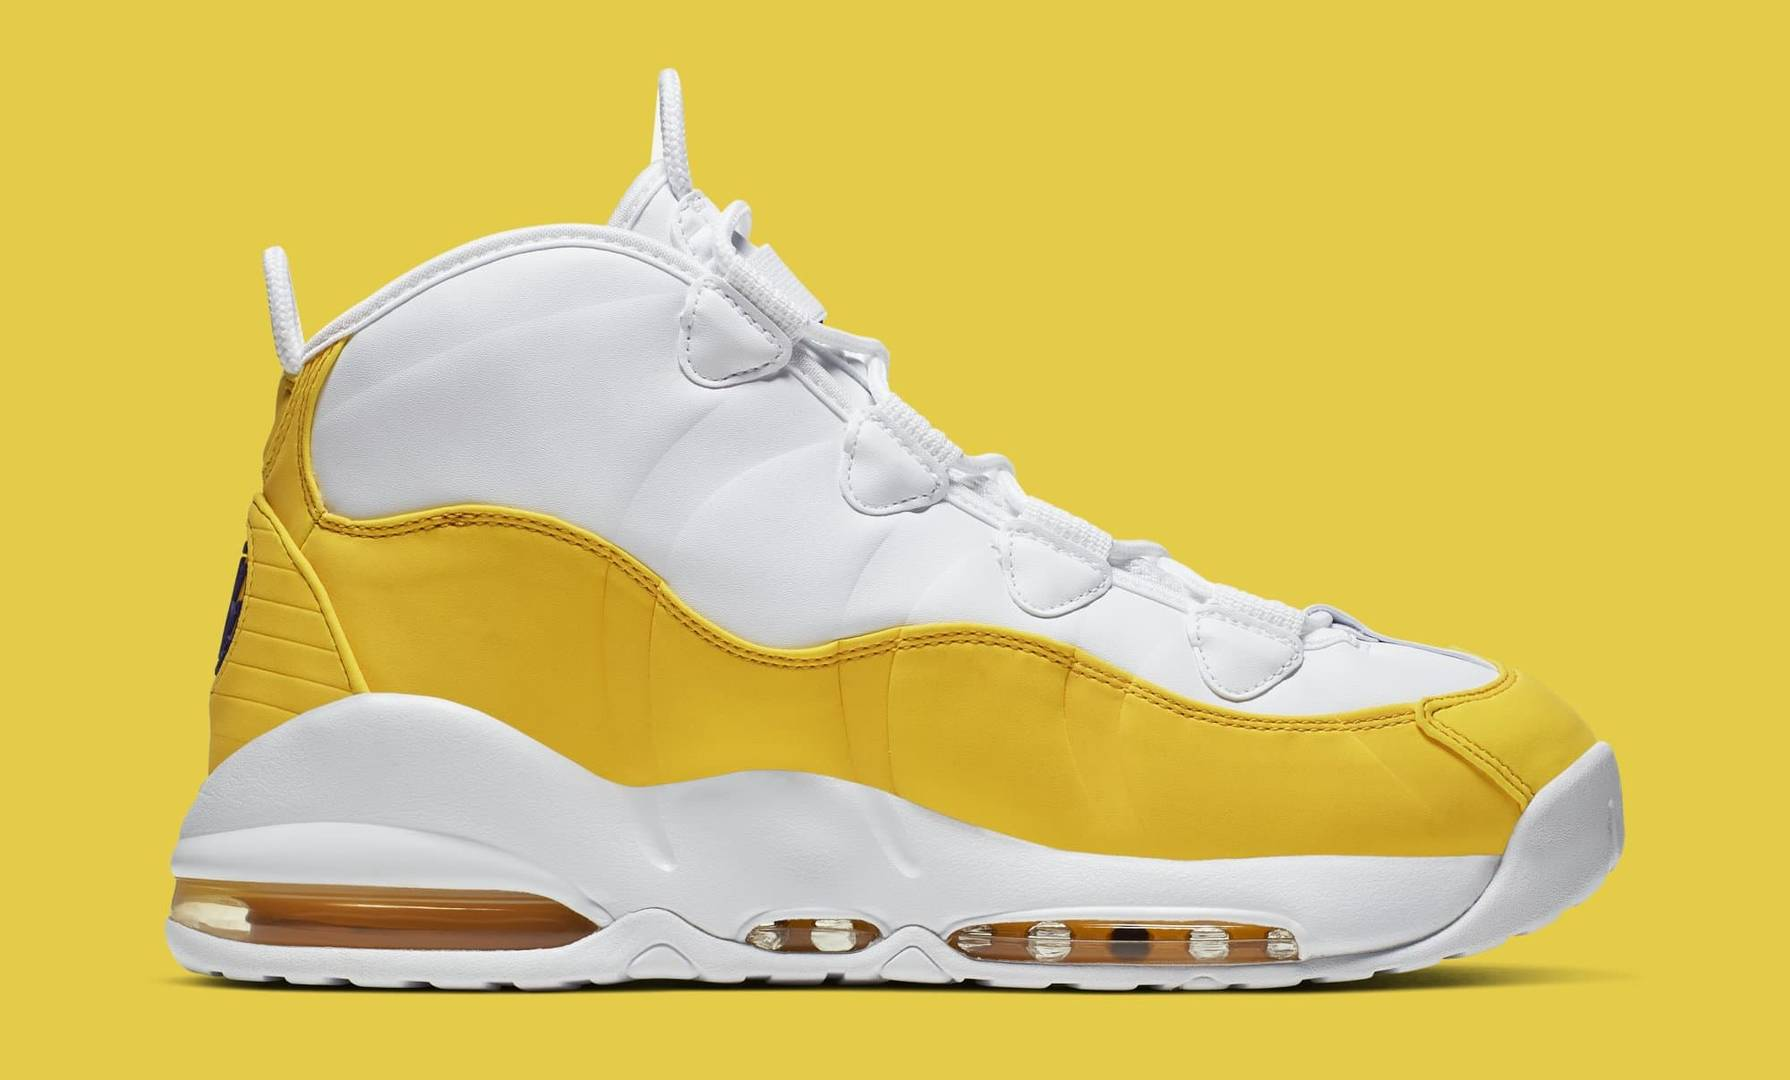 Nike Releasing Derek Fisher's Air Max Uptempo PE From 2002